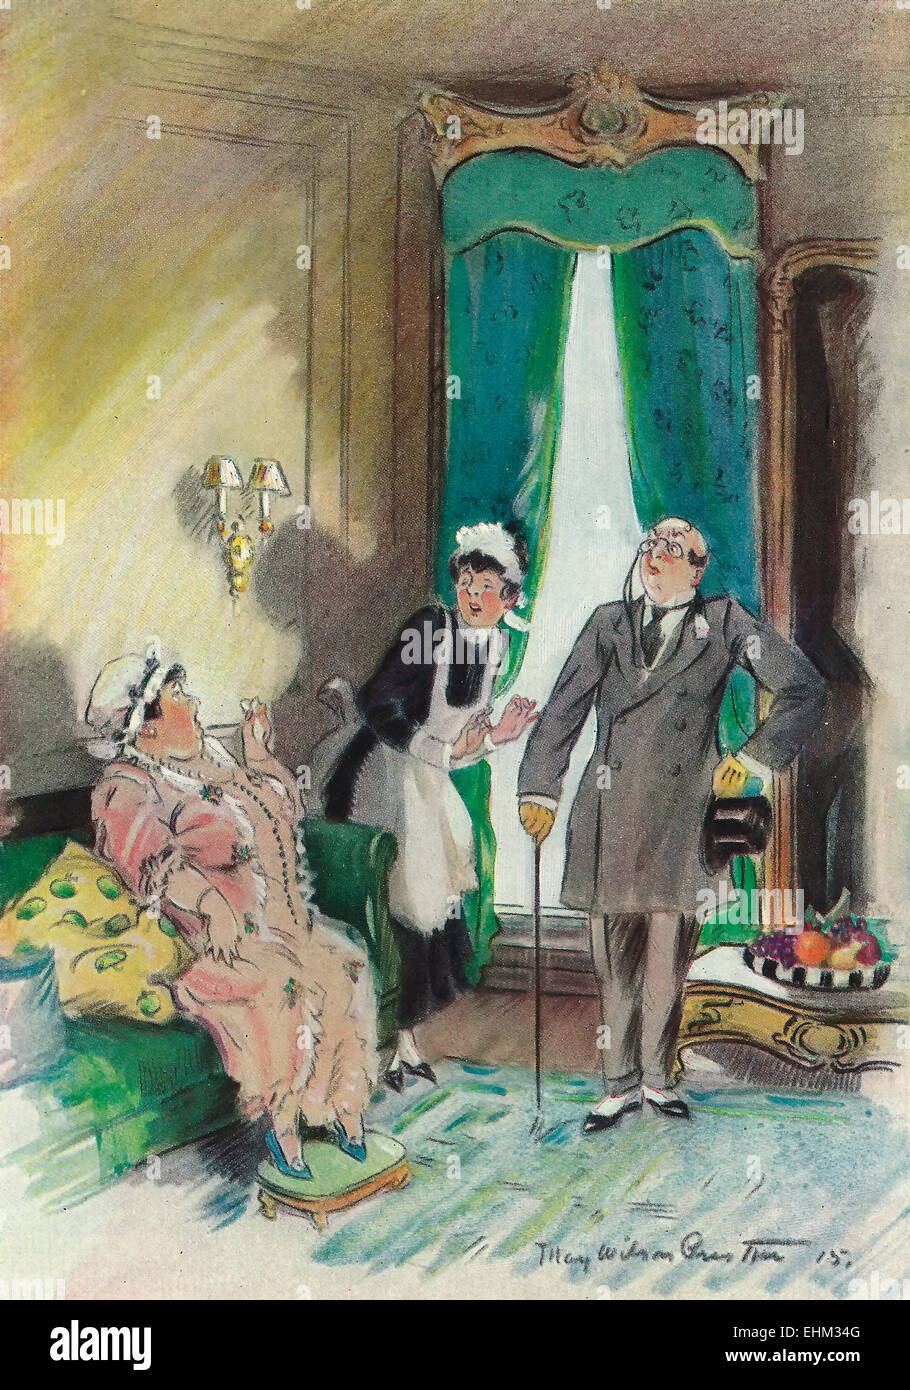 Besides, it's Wagner, and one is never to fat for Wagner  -  Parlor Discussion - May Wilson Preston 1915 - Stock Image